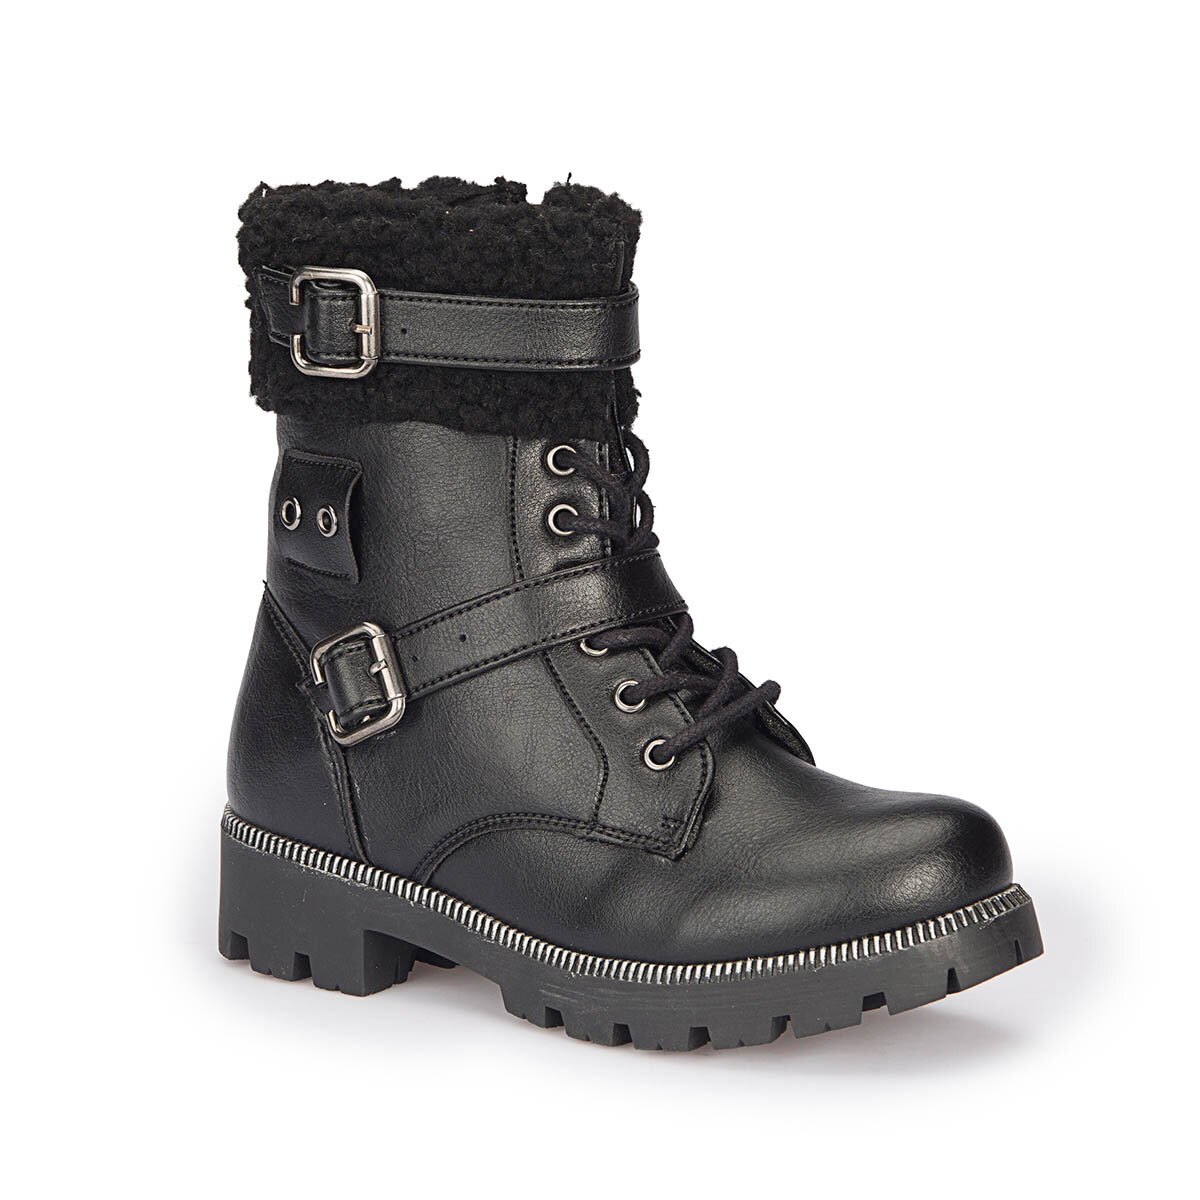 FLO 72.508486.F Black Female Child Boots Polaris